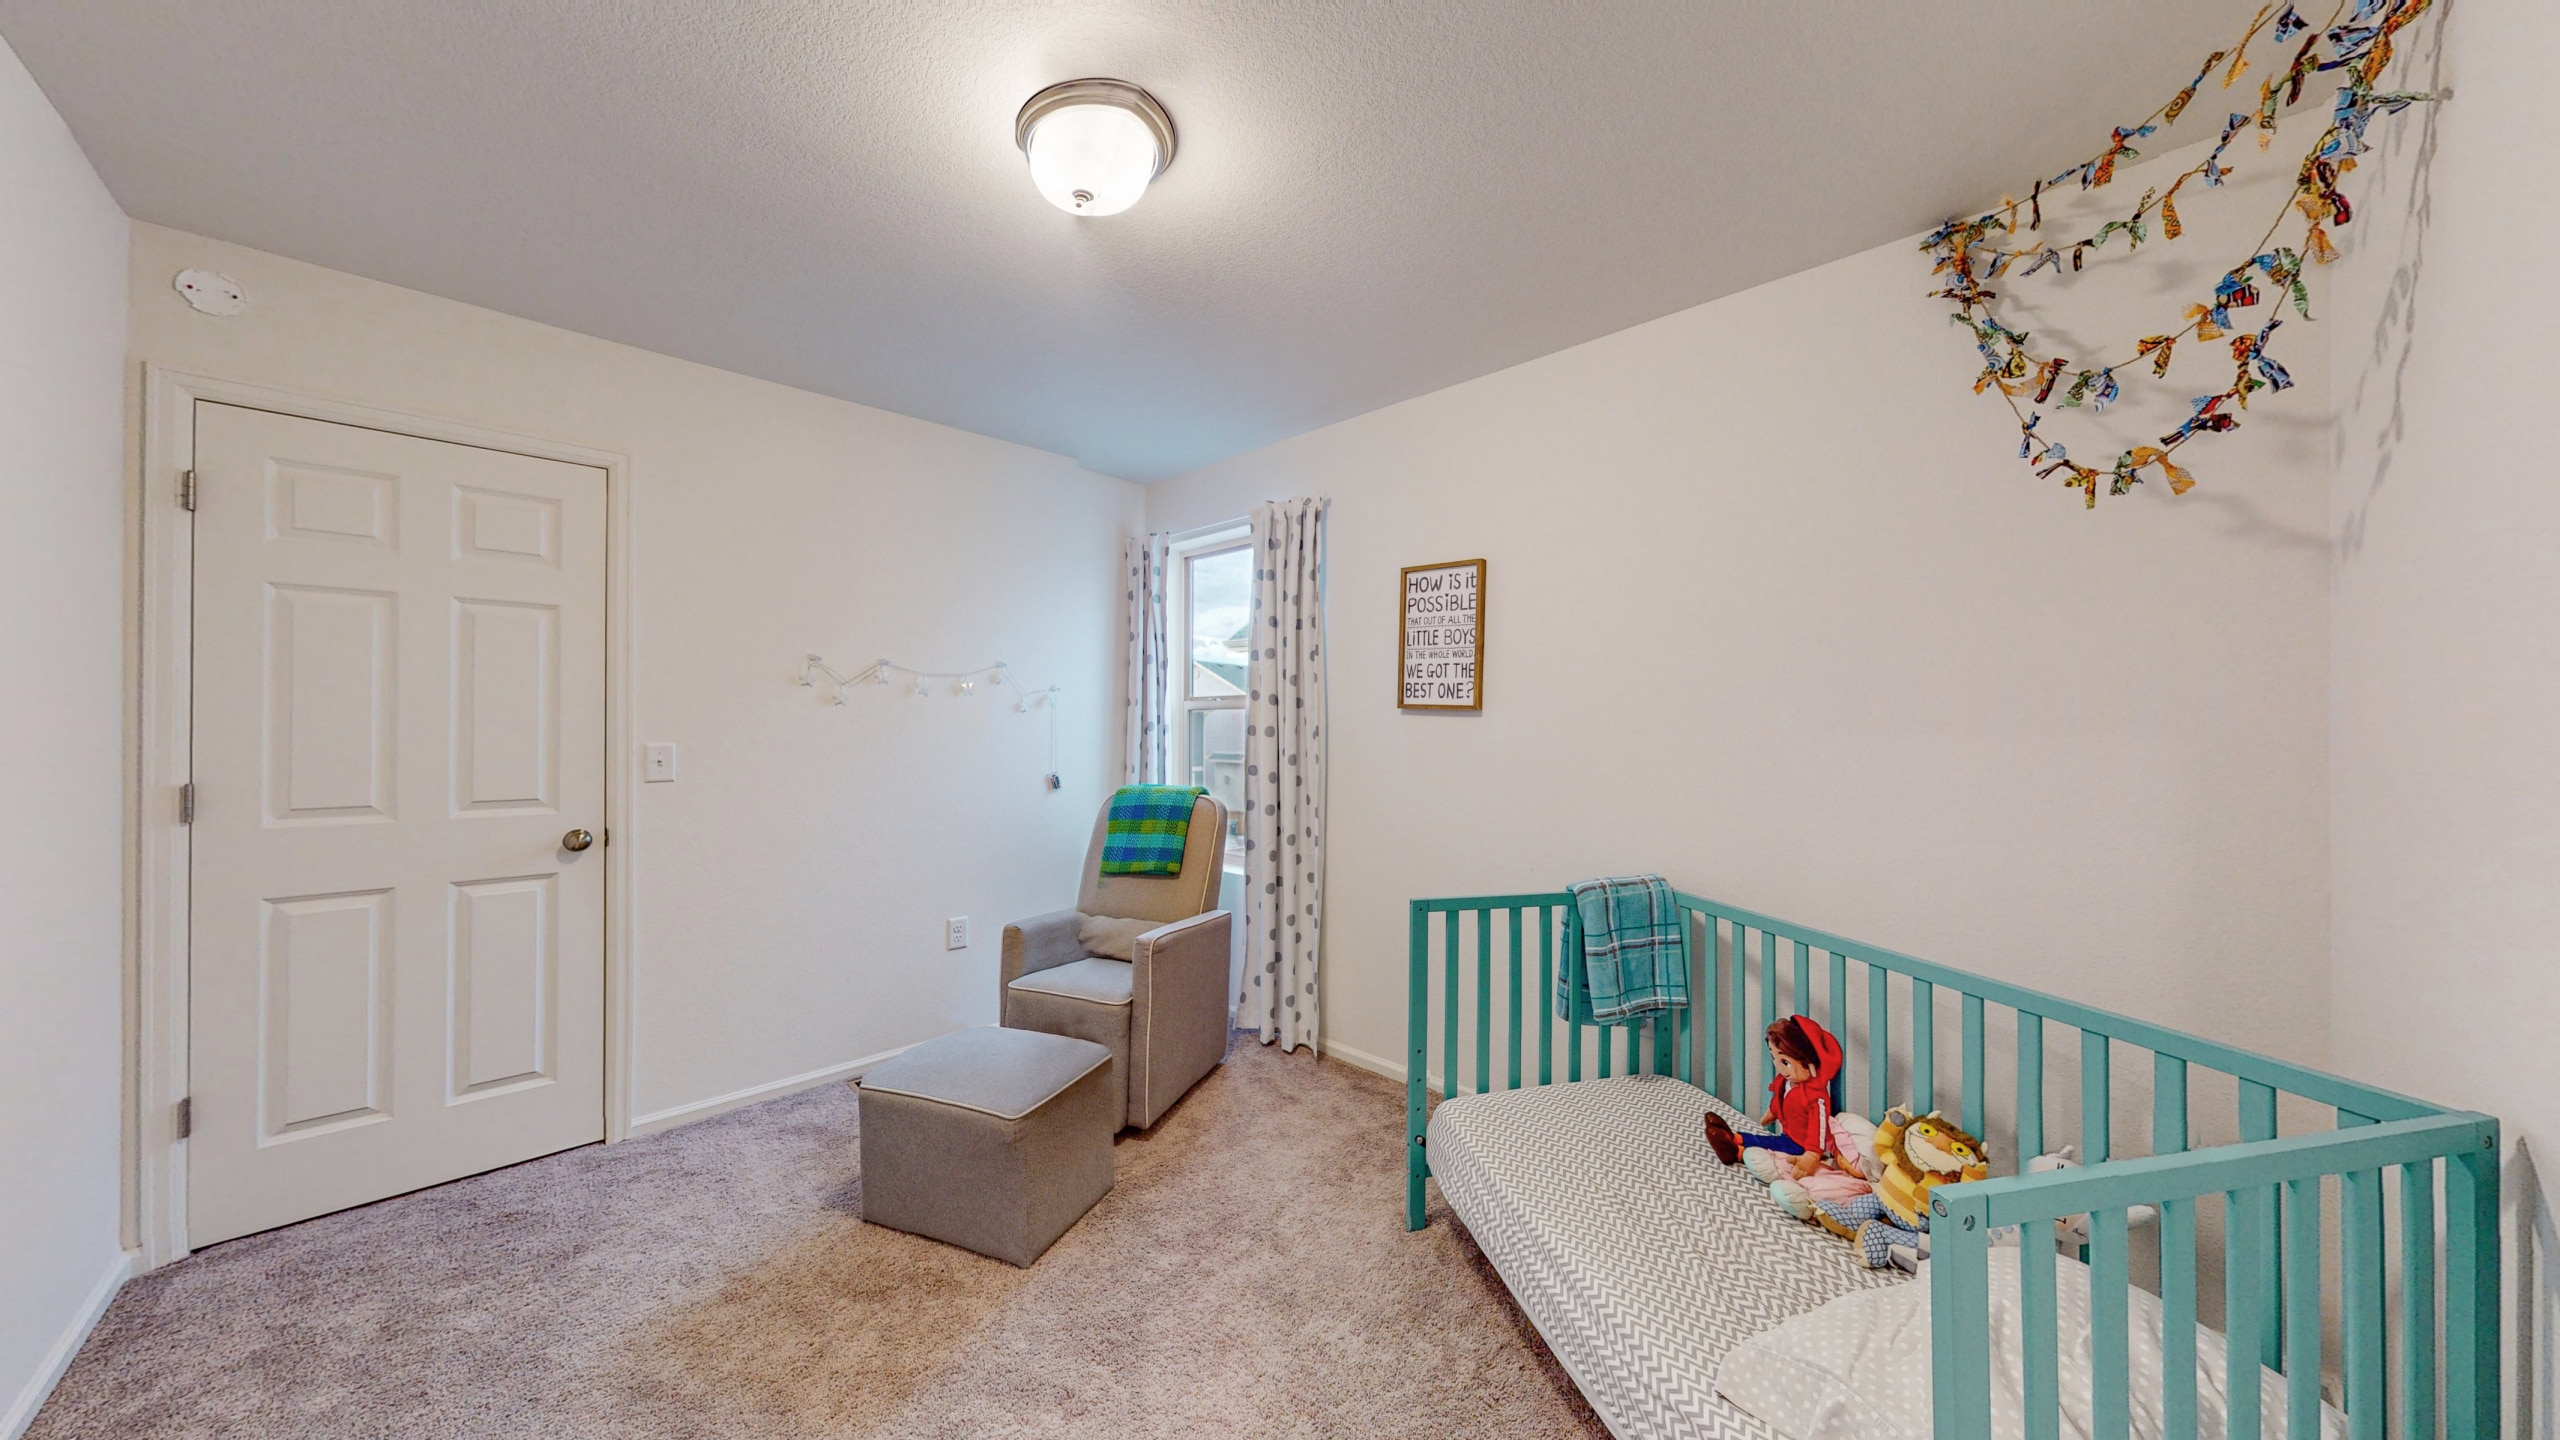 Commerce City Home for Sale spacious bedroom with large closet